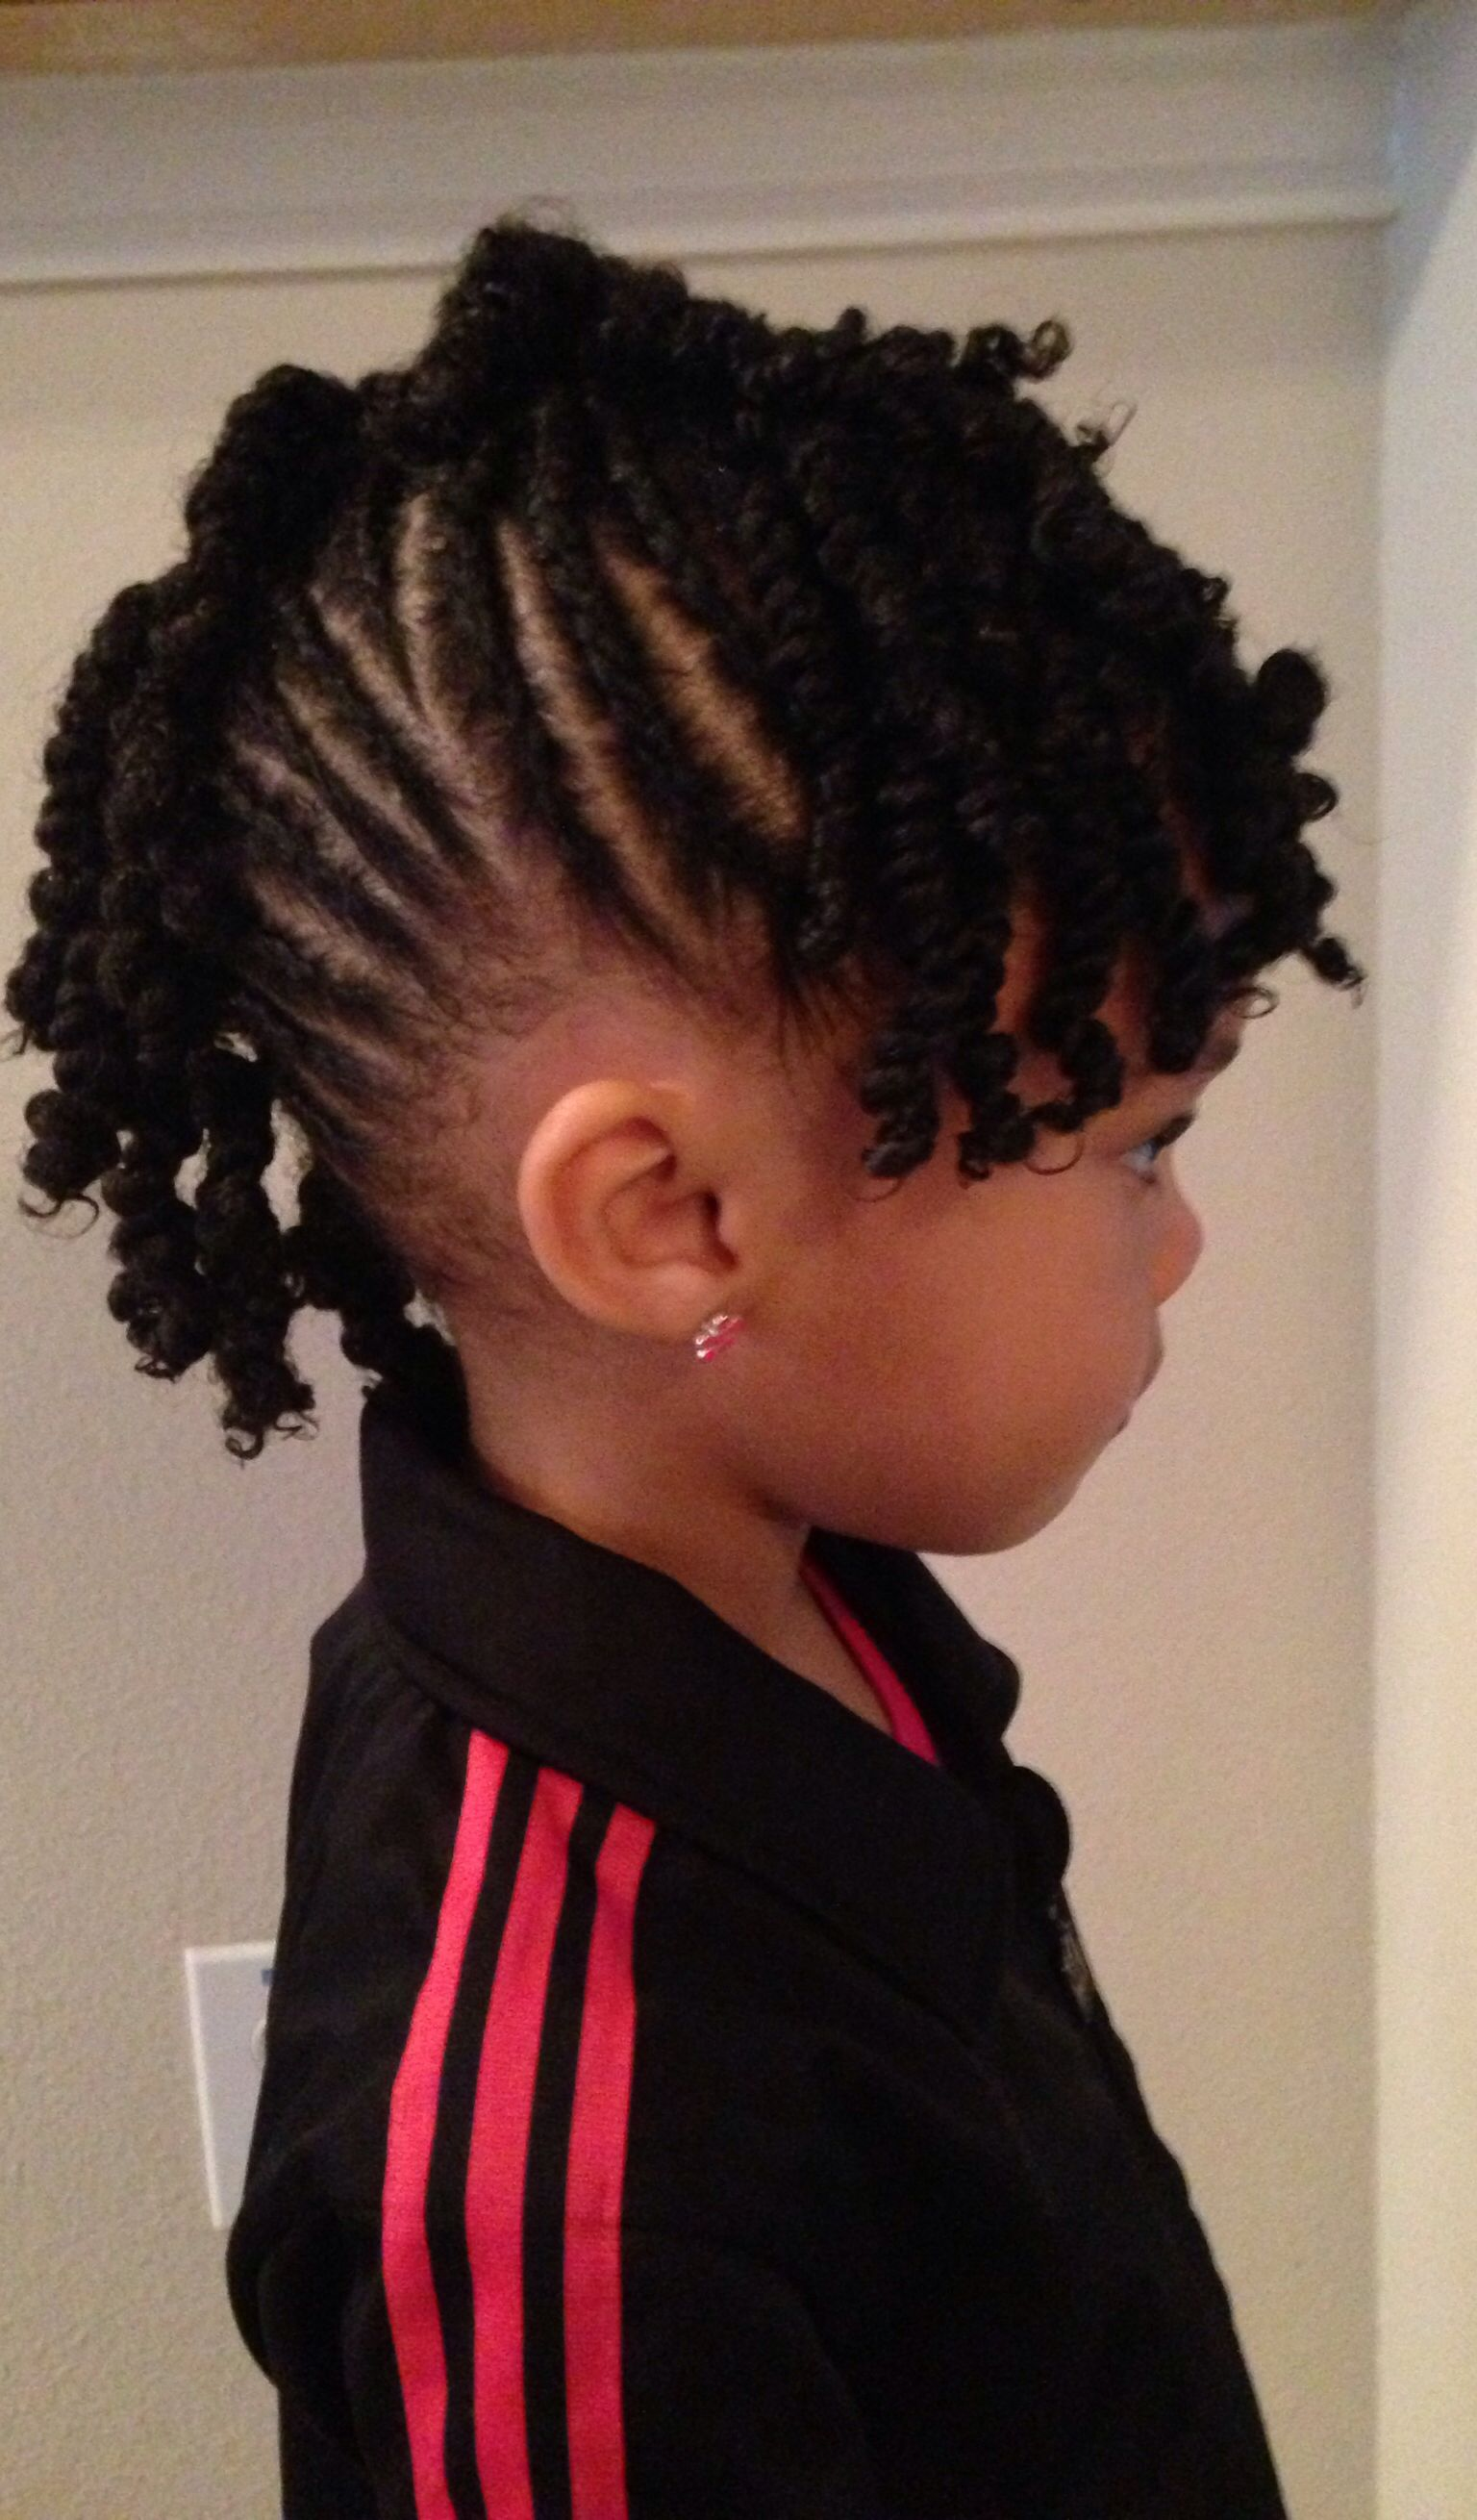 Cute Natural Hairstyles For Girls By Prim Mobile Salon Dfw